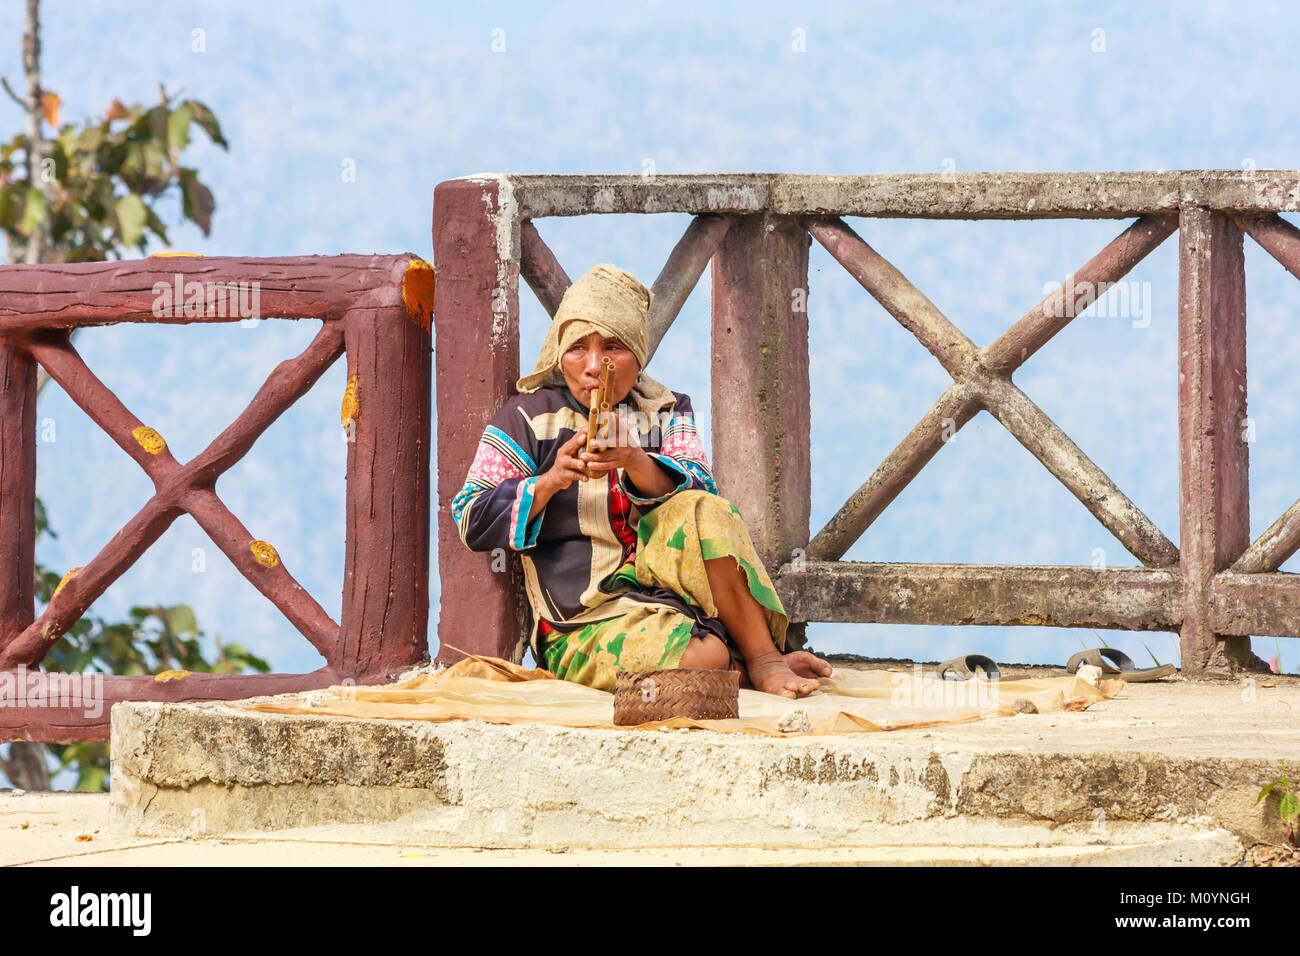 Lahu hilltribe woman playing musical pipes, Tak province, Thailand - Stock Image